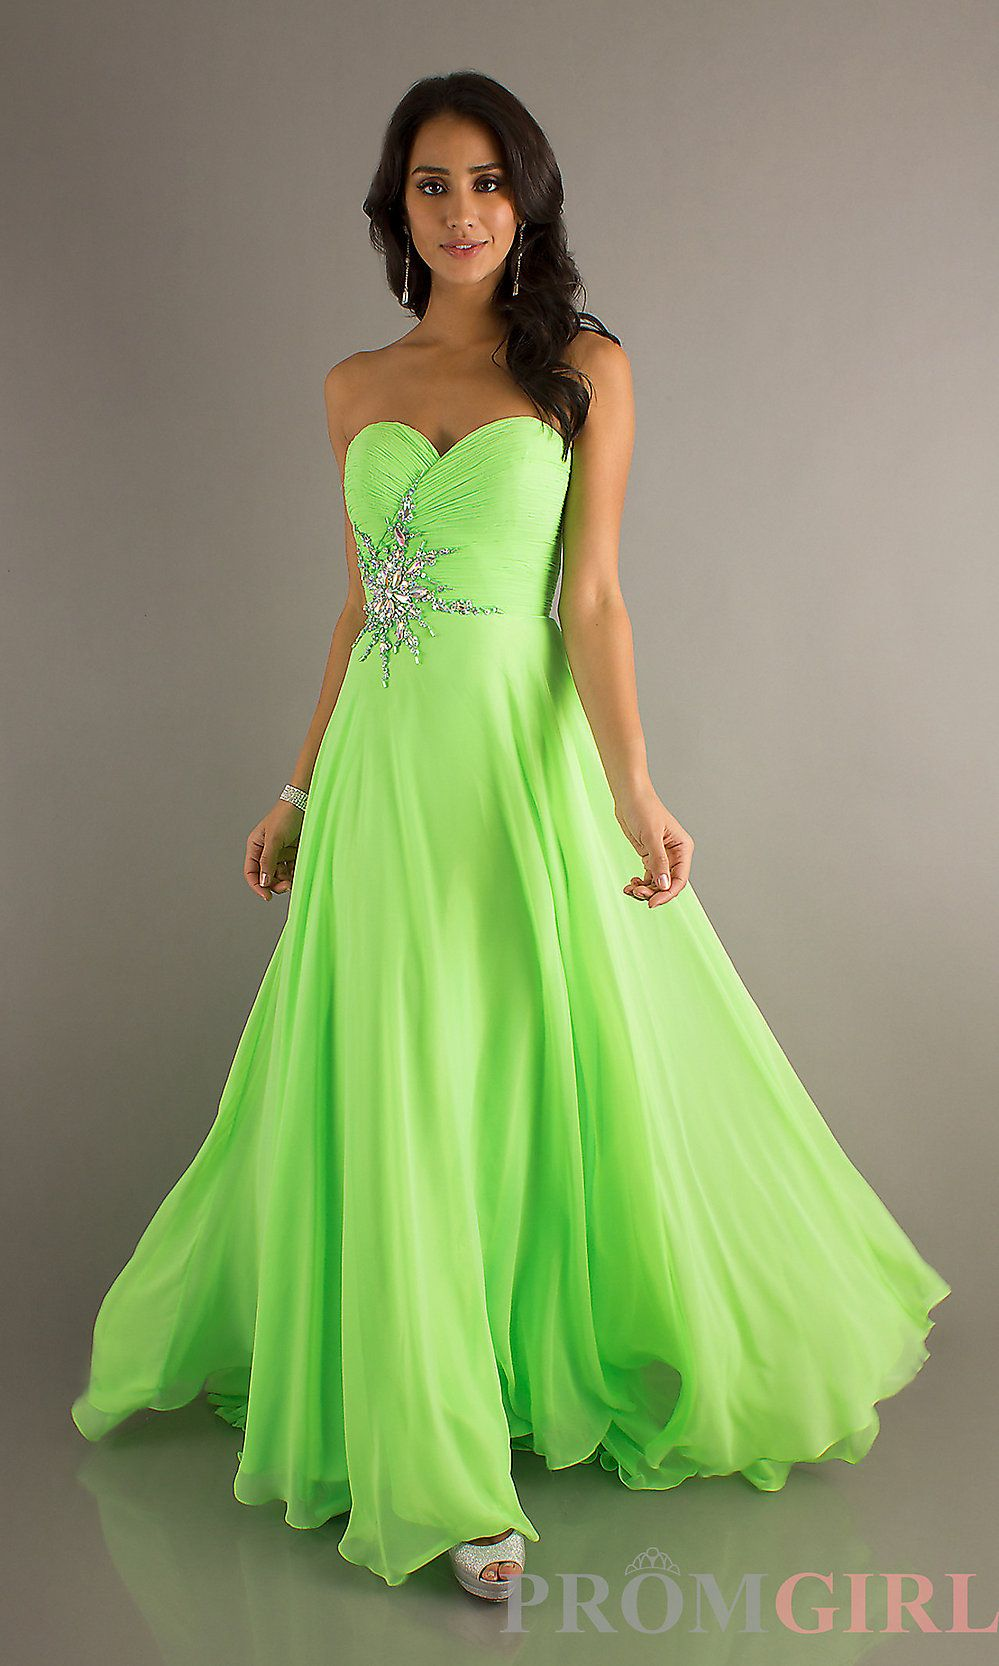 Strapless Prom Gown By Crush